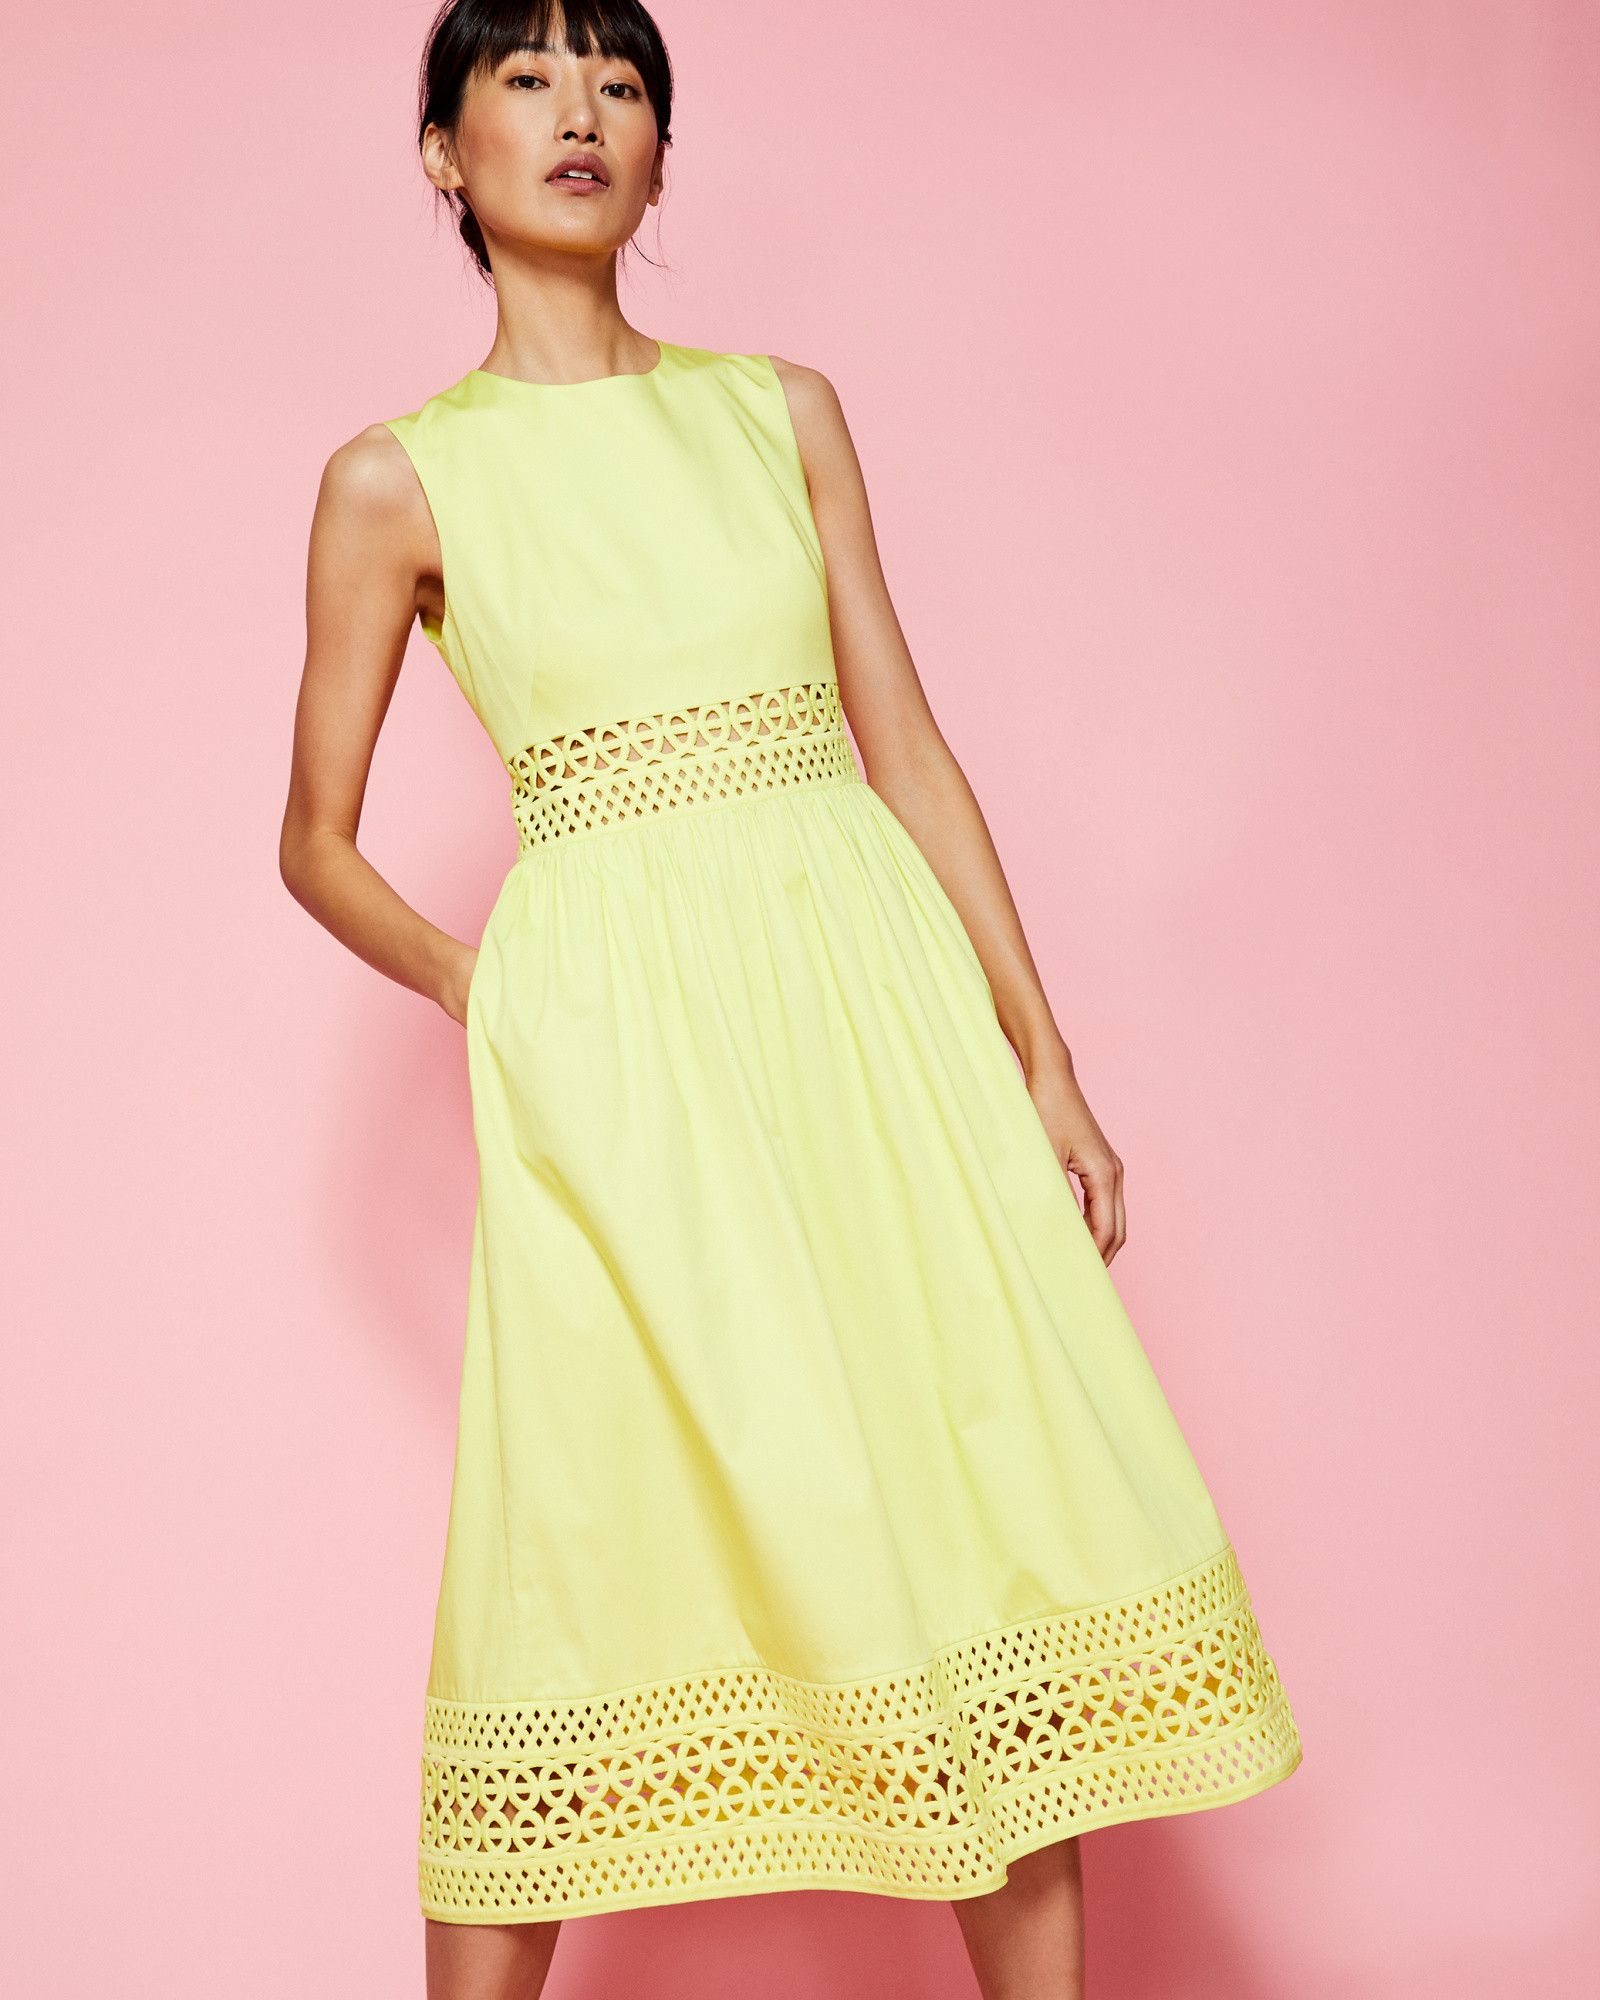 Cut-out lace cotton dress - Mid Green | Dresses | Ted Baker UK ...